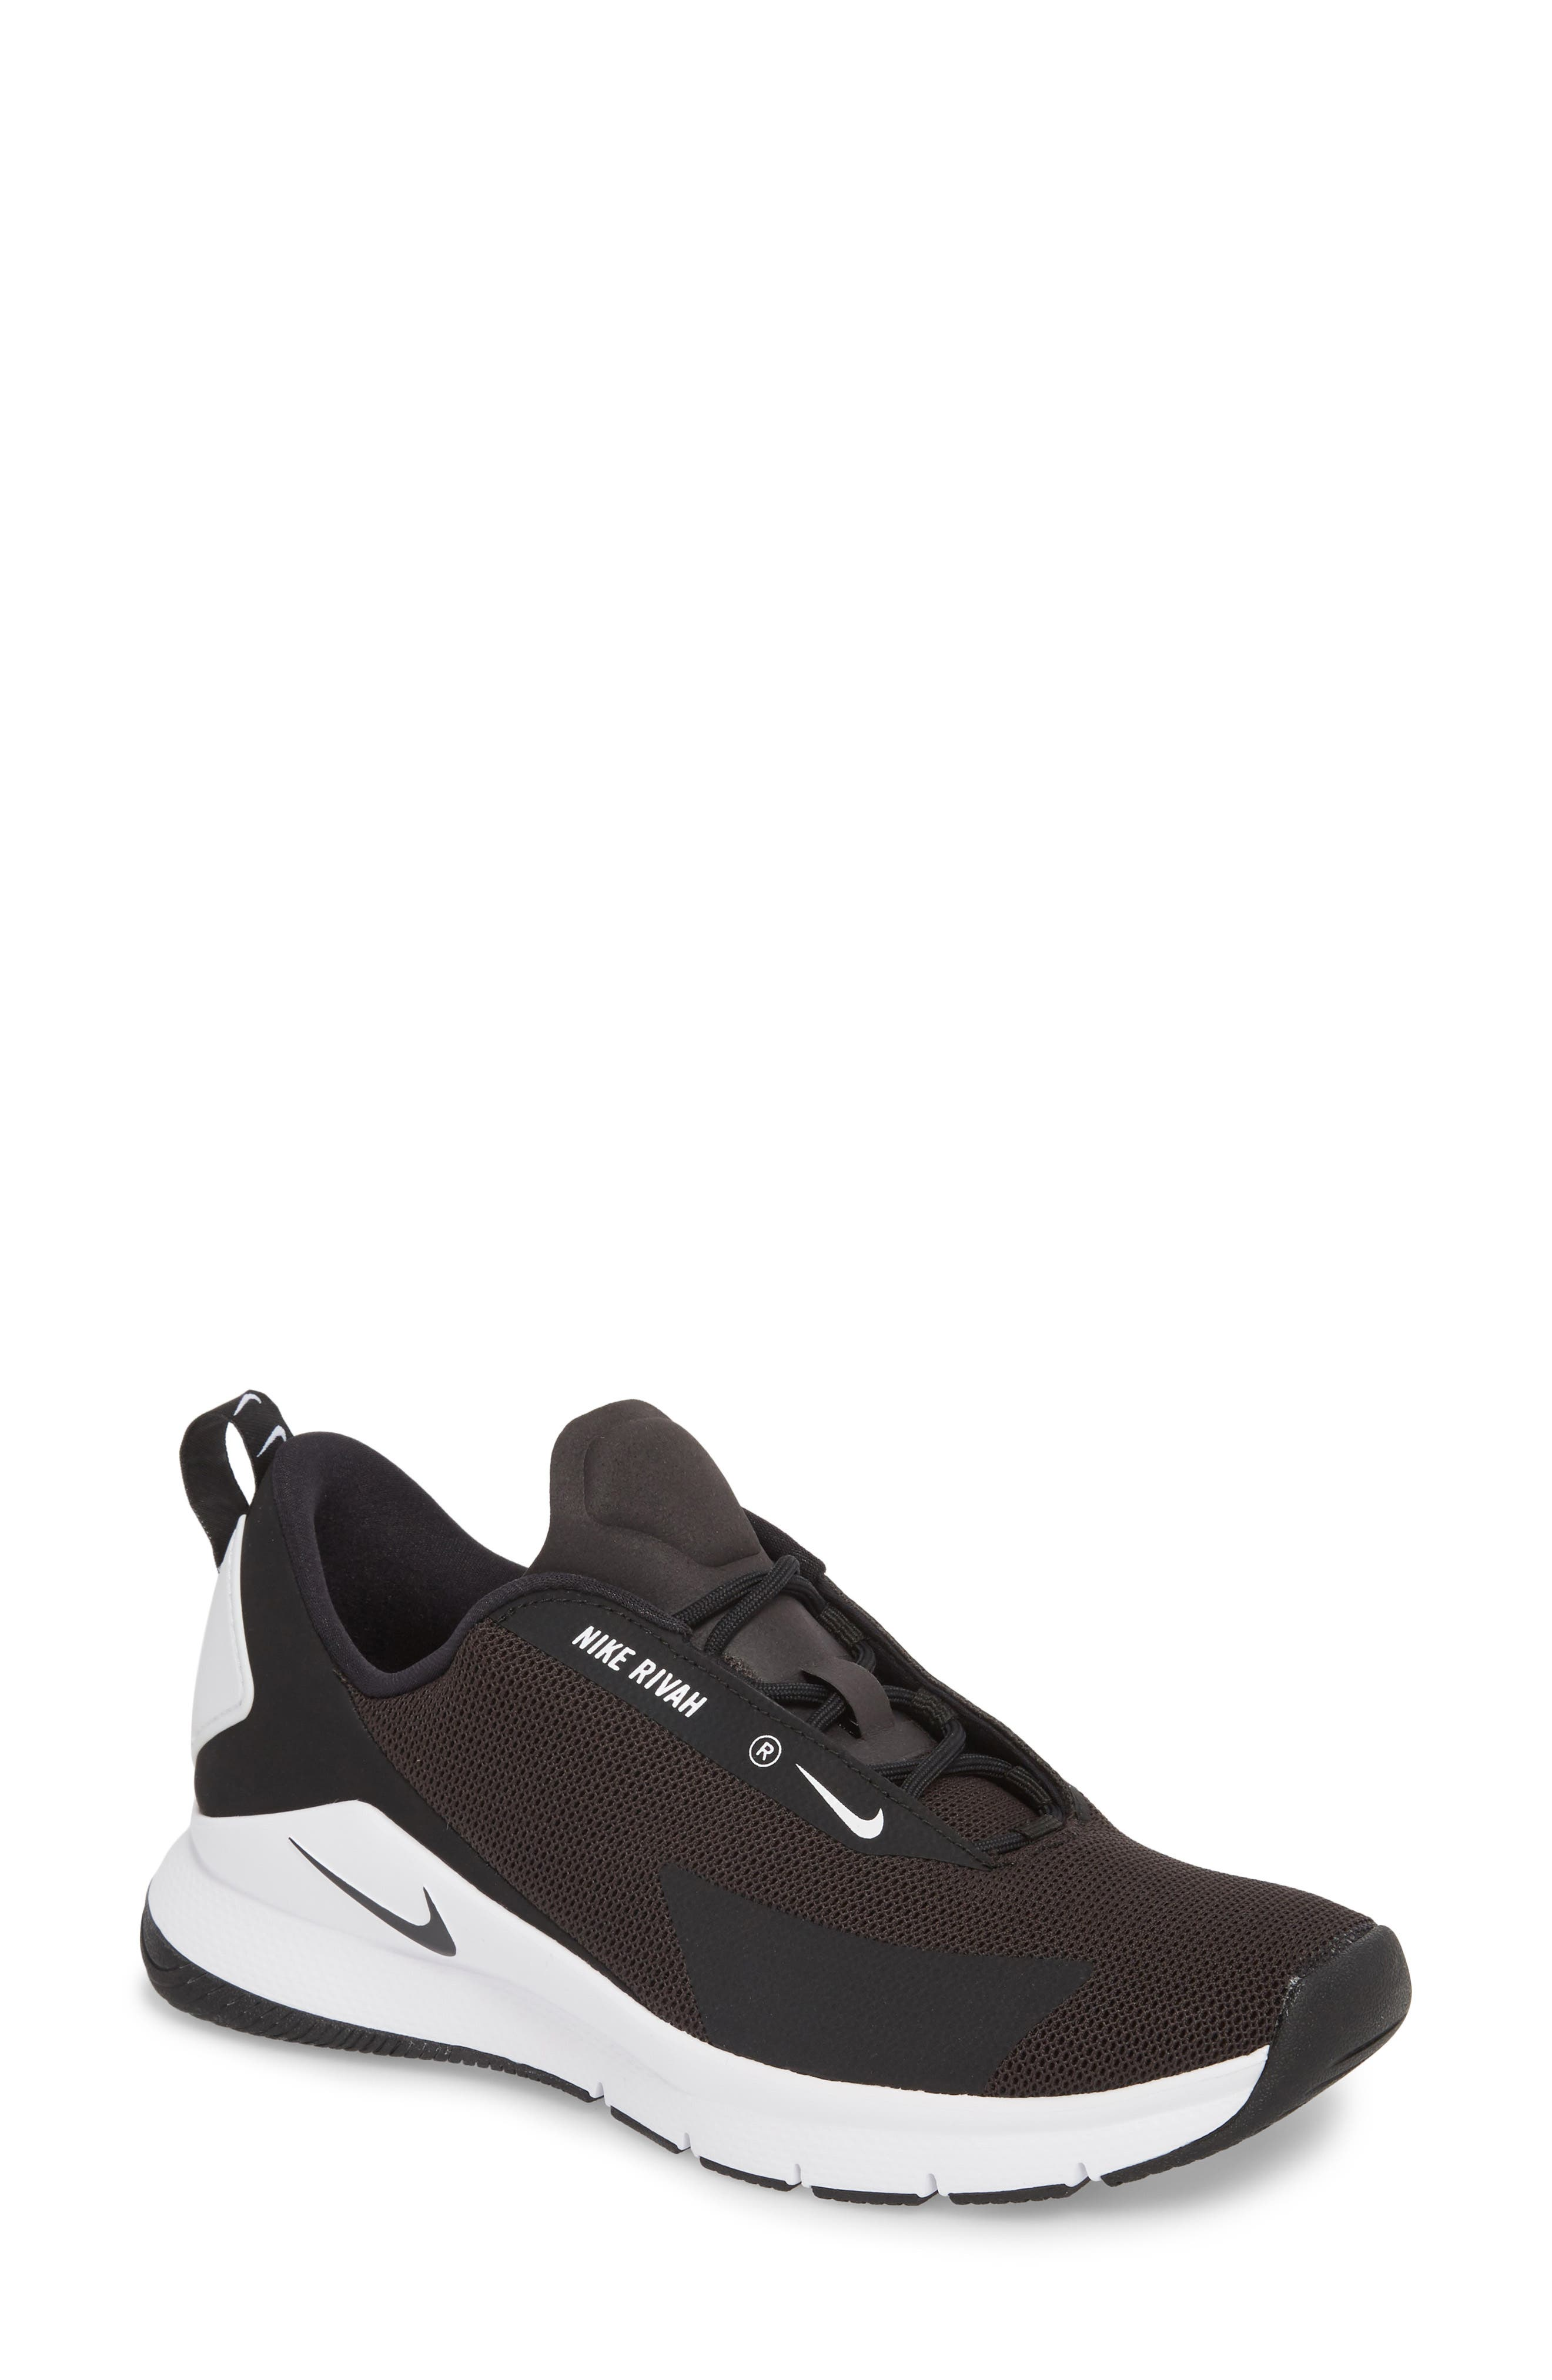 Rivah Sneaker,                             Main thumbnail 1, color,                             Black/ Black/ White